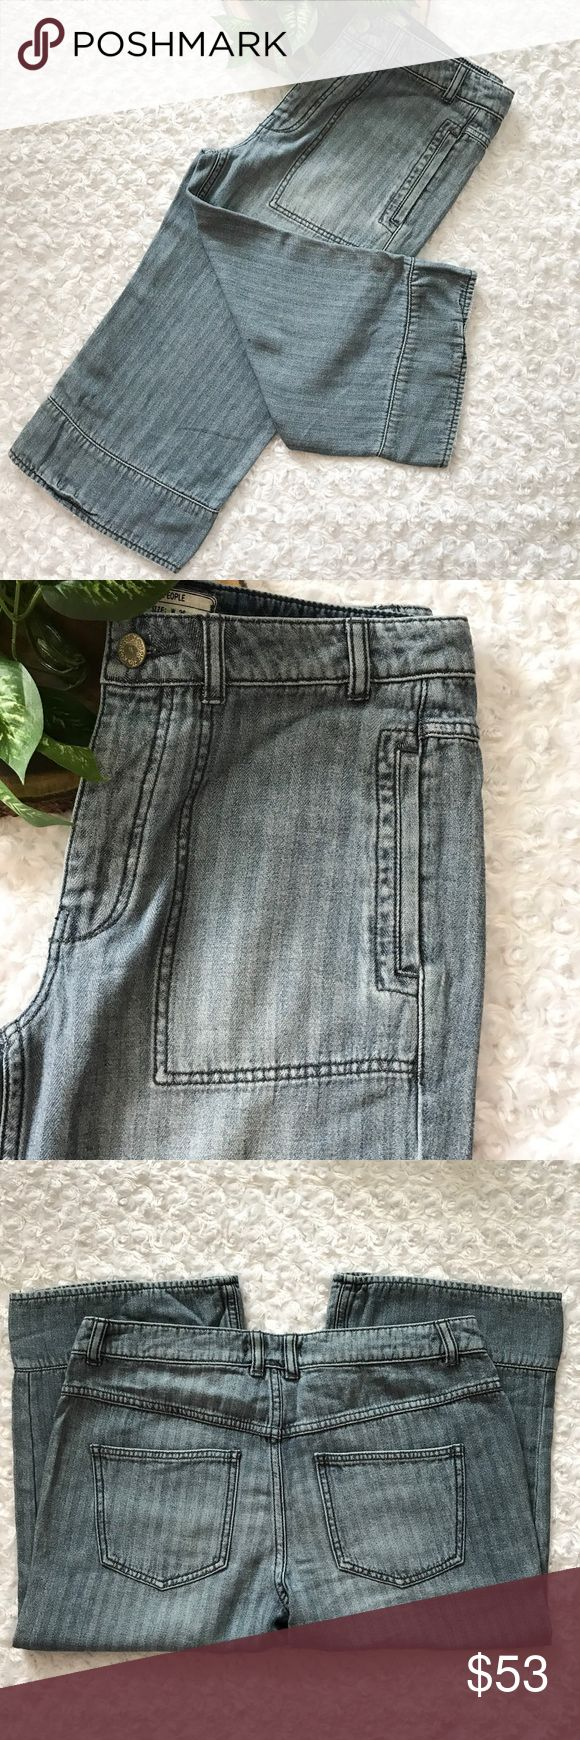 NEW Free People Stripe Denim Capri Jeans NEW Free People Light Blue Stripe Denim Capri Cropped Jeans. Button fly. NWOT. Size 26.  Pet and smoke free home. No Trades! Bundle and save! Inquire below with questions! Thanks for looking, sharing, and saving. Free People Jeans Ankle & Cropped